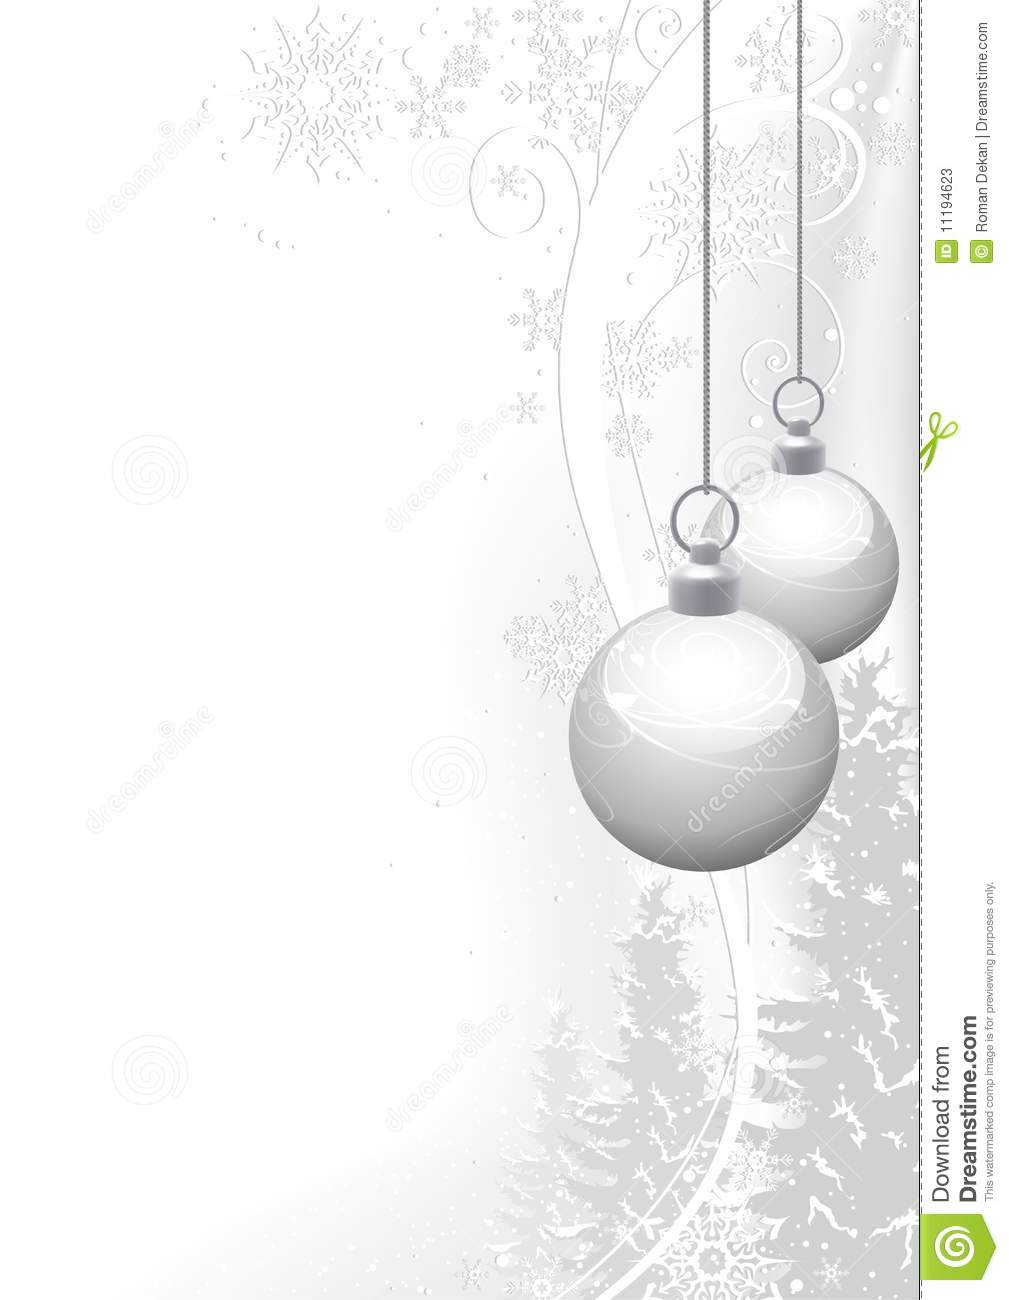 White Christmas and winter floral